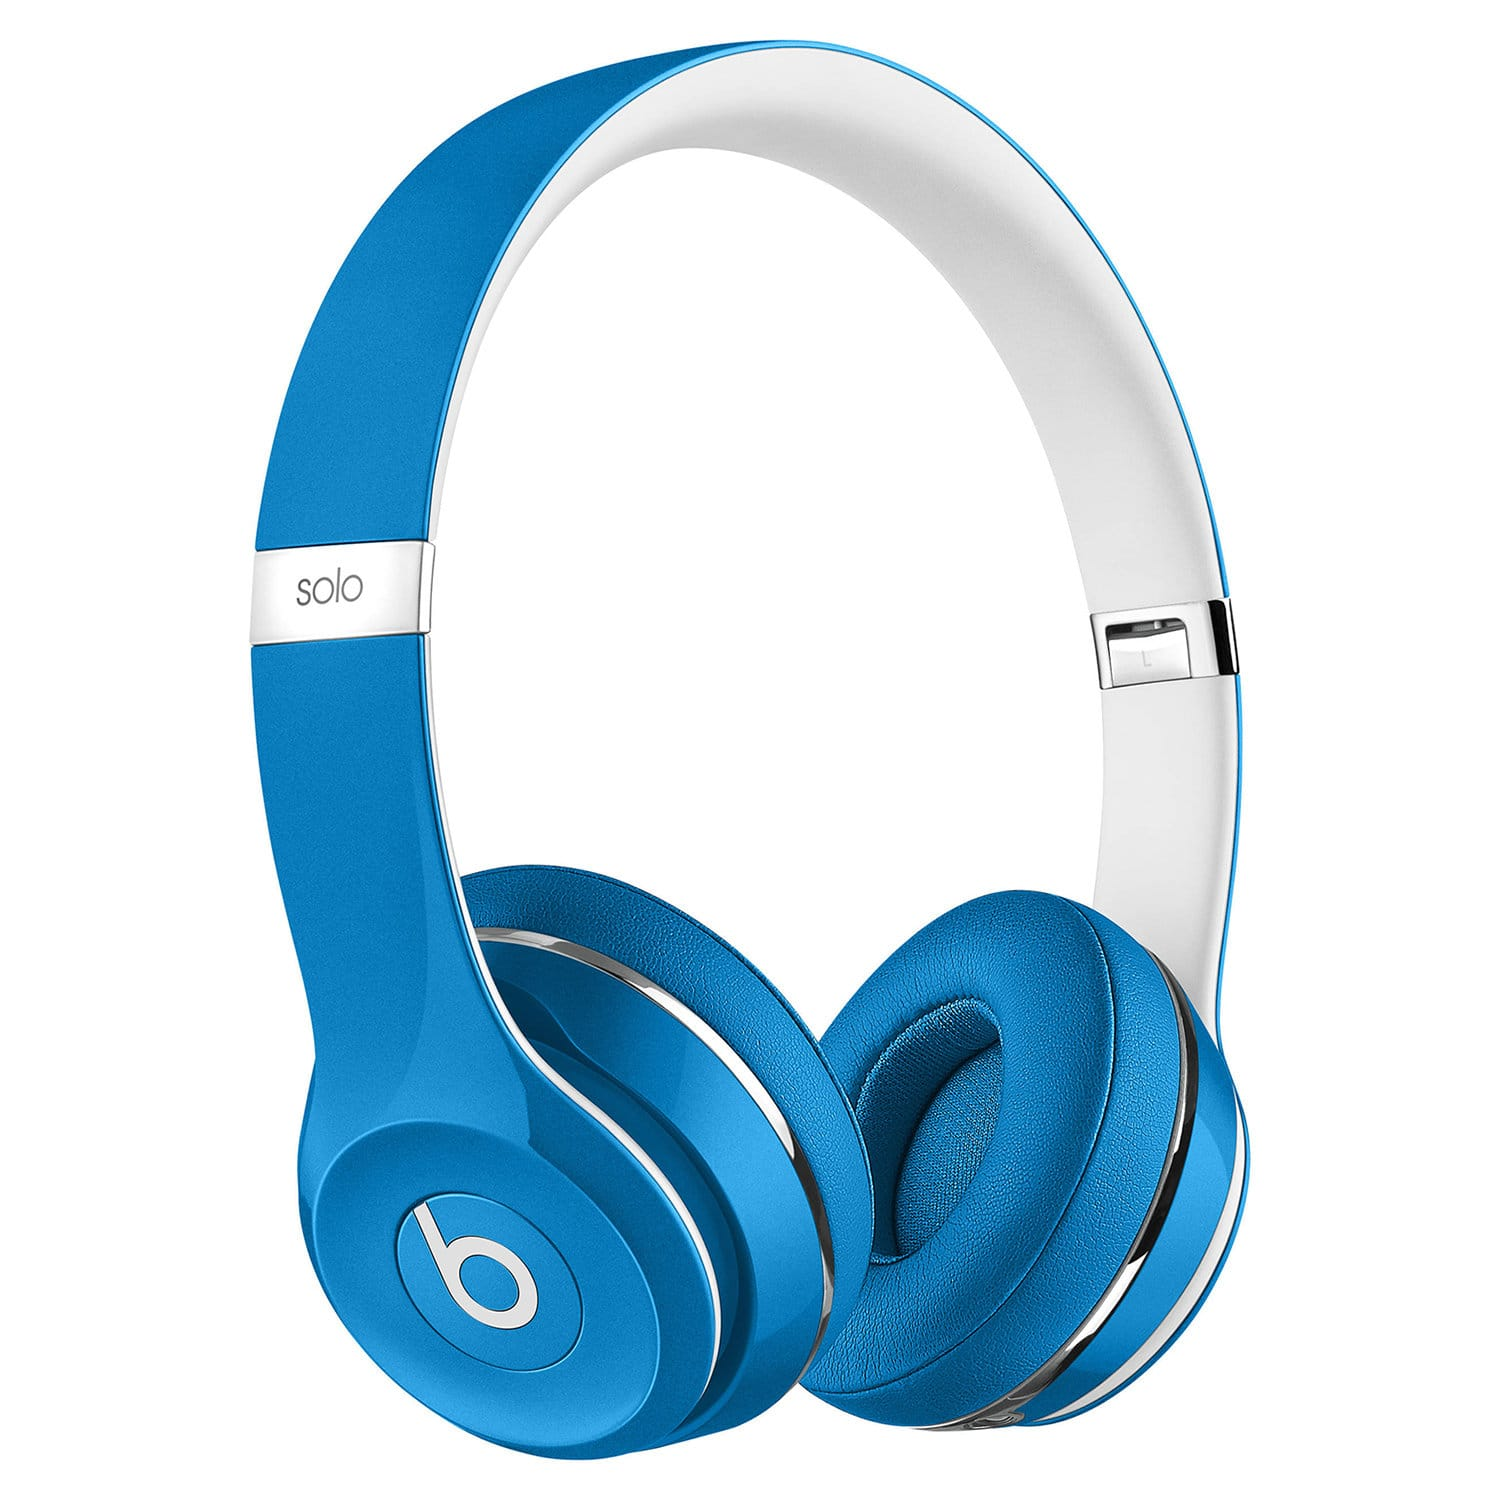 Beats Solo 2 Luxe Edition -3 Colors for $99.95 AC + Free Shipping